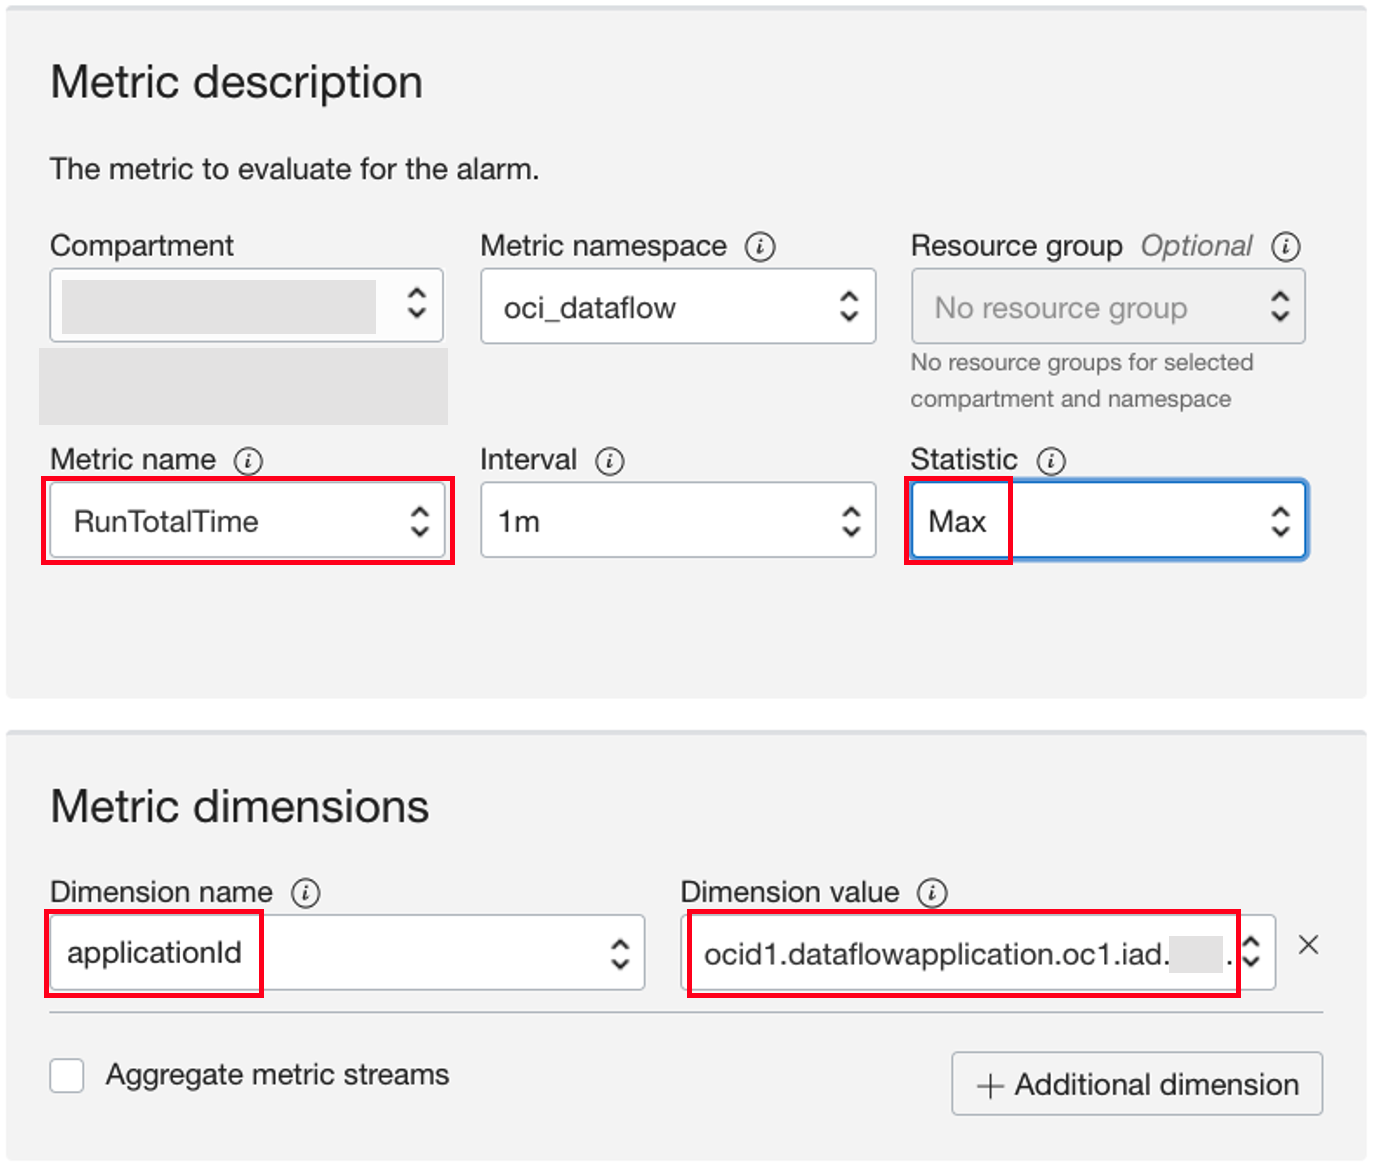 A screenshot of the Metric description page with RunTotalTime, Statistic, Dimension name, and Dimension value sections outlined in red.